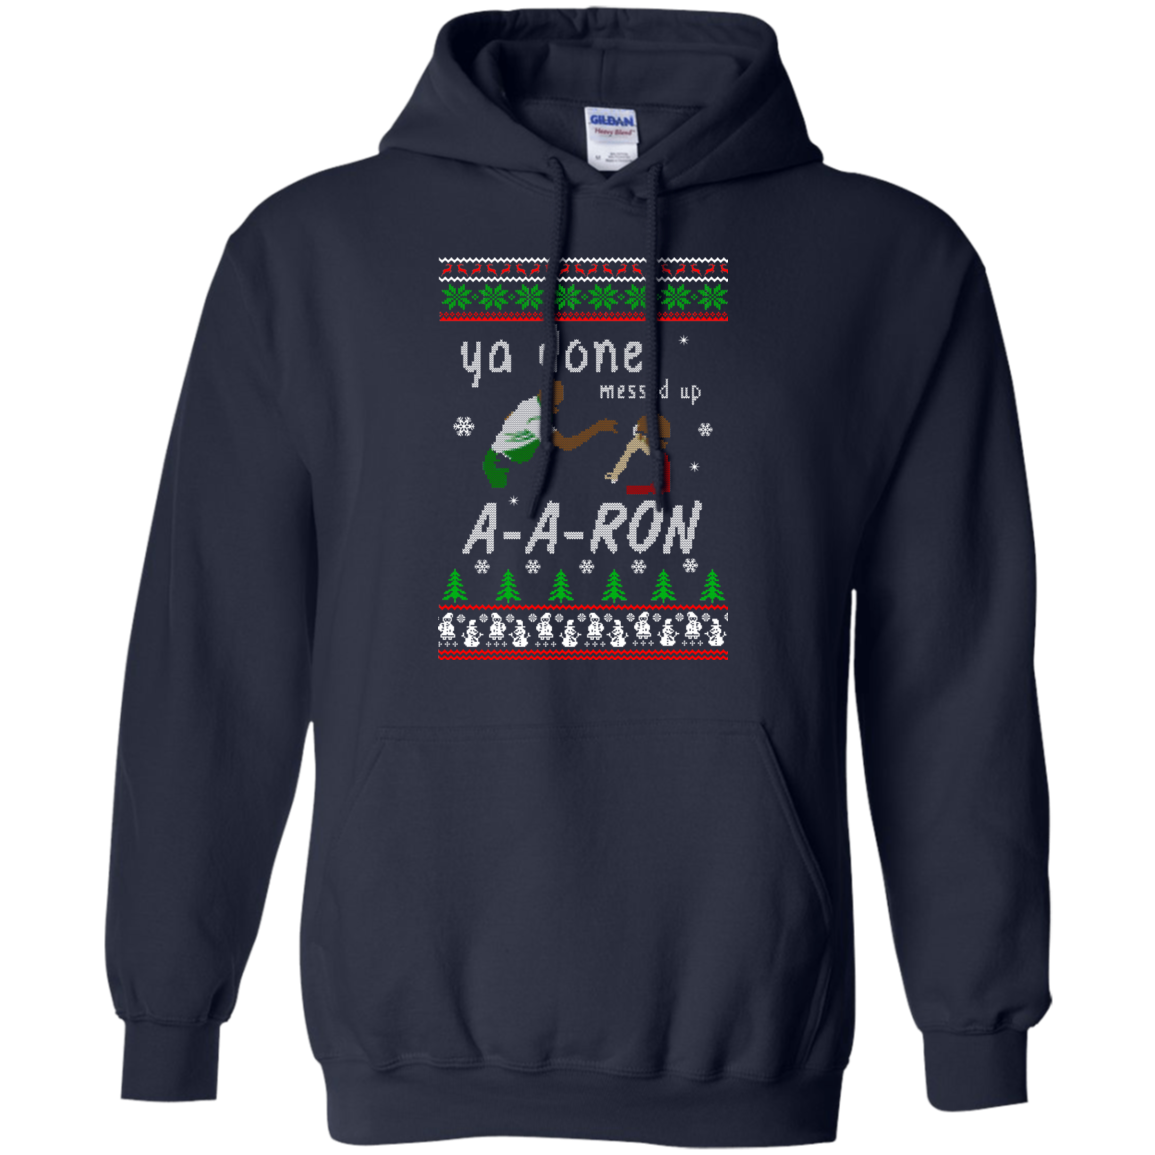 24a594ce1 Aaron Sweater - Ya done messed up Sweater, T-Shirt, Hoodie ...